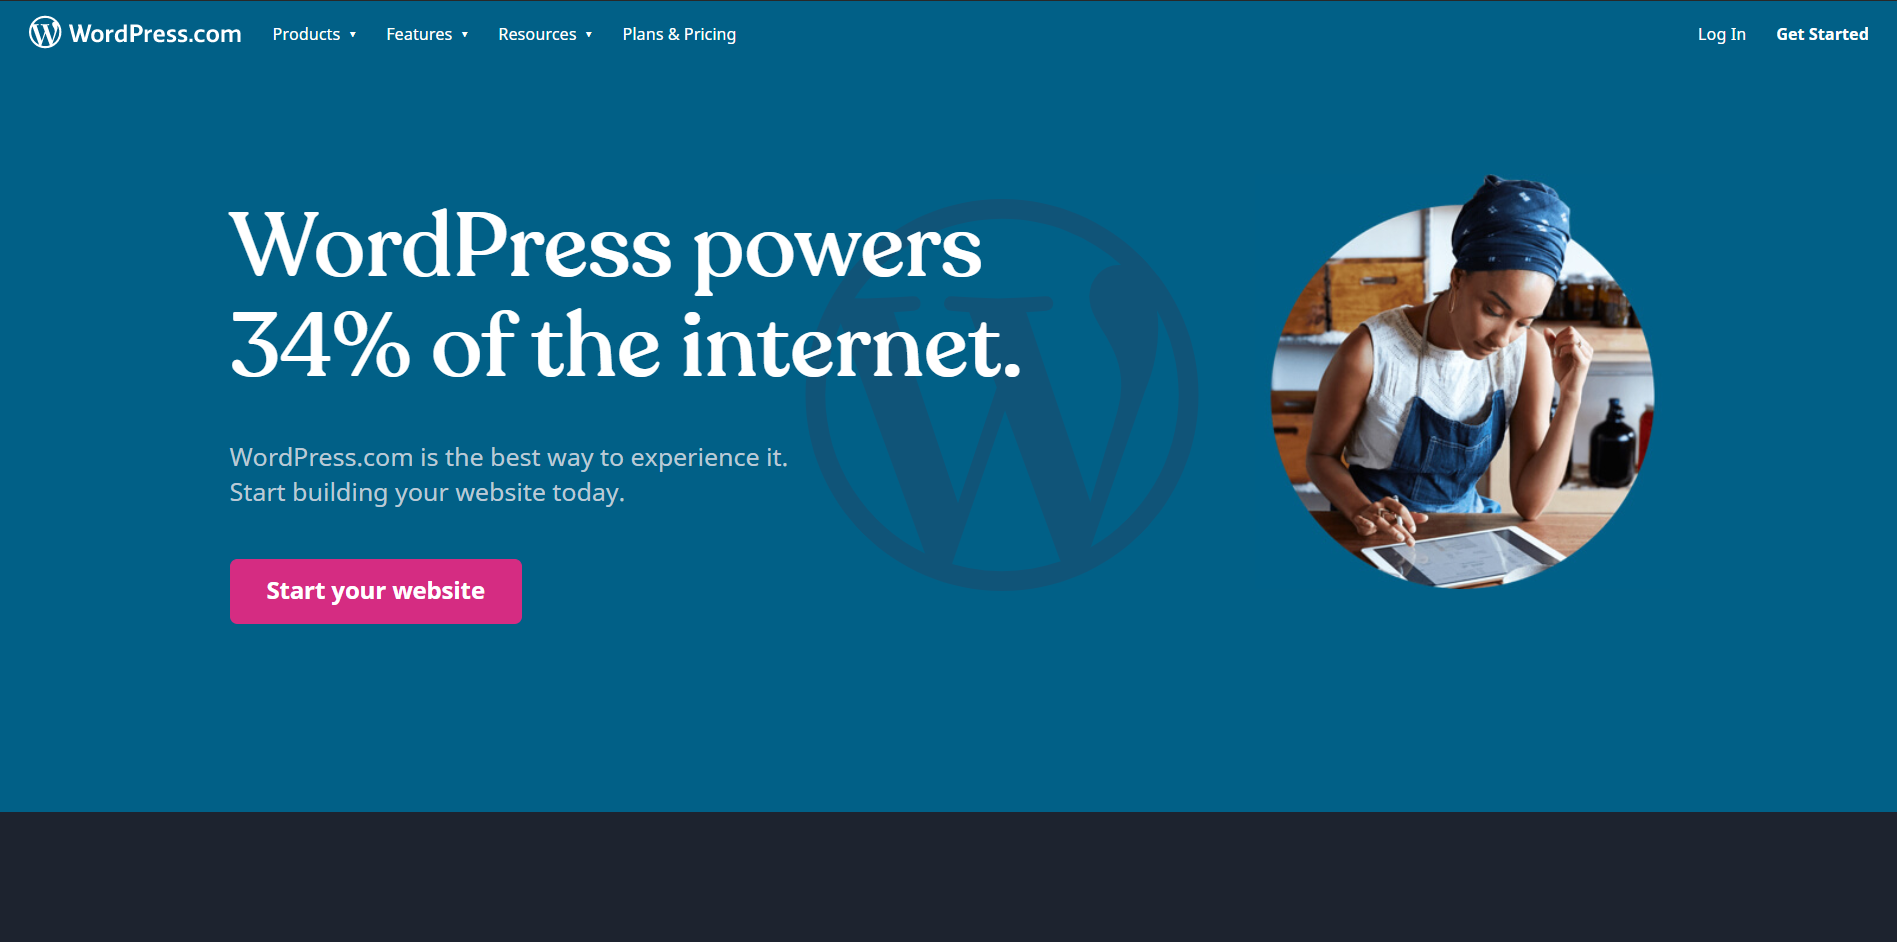 wordpress.com gratis målsida